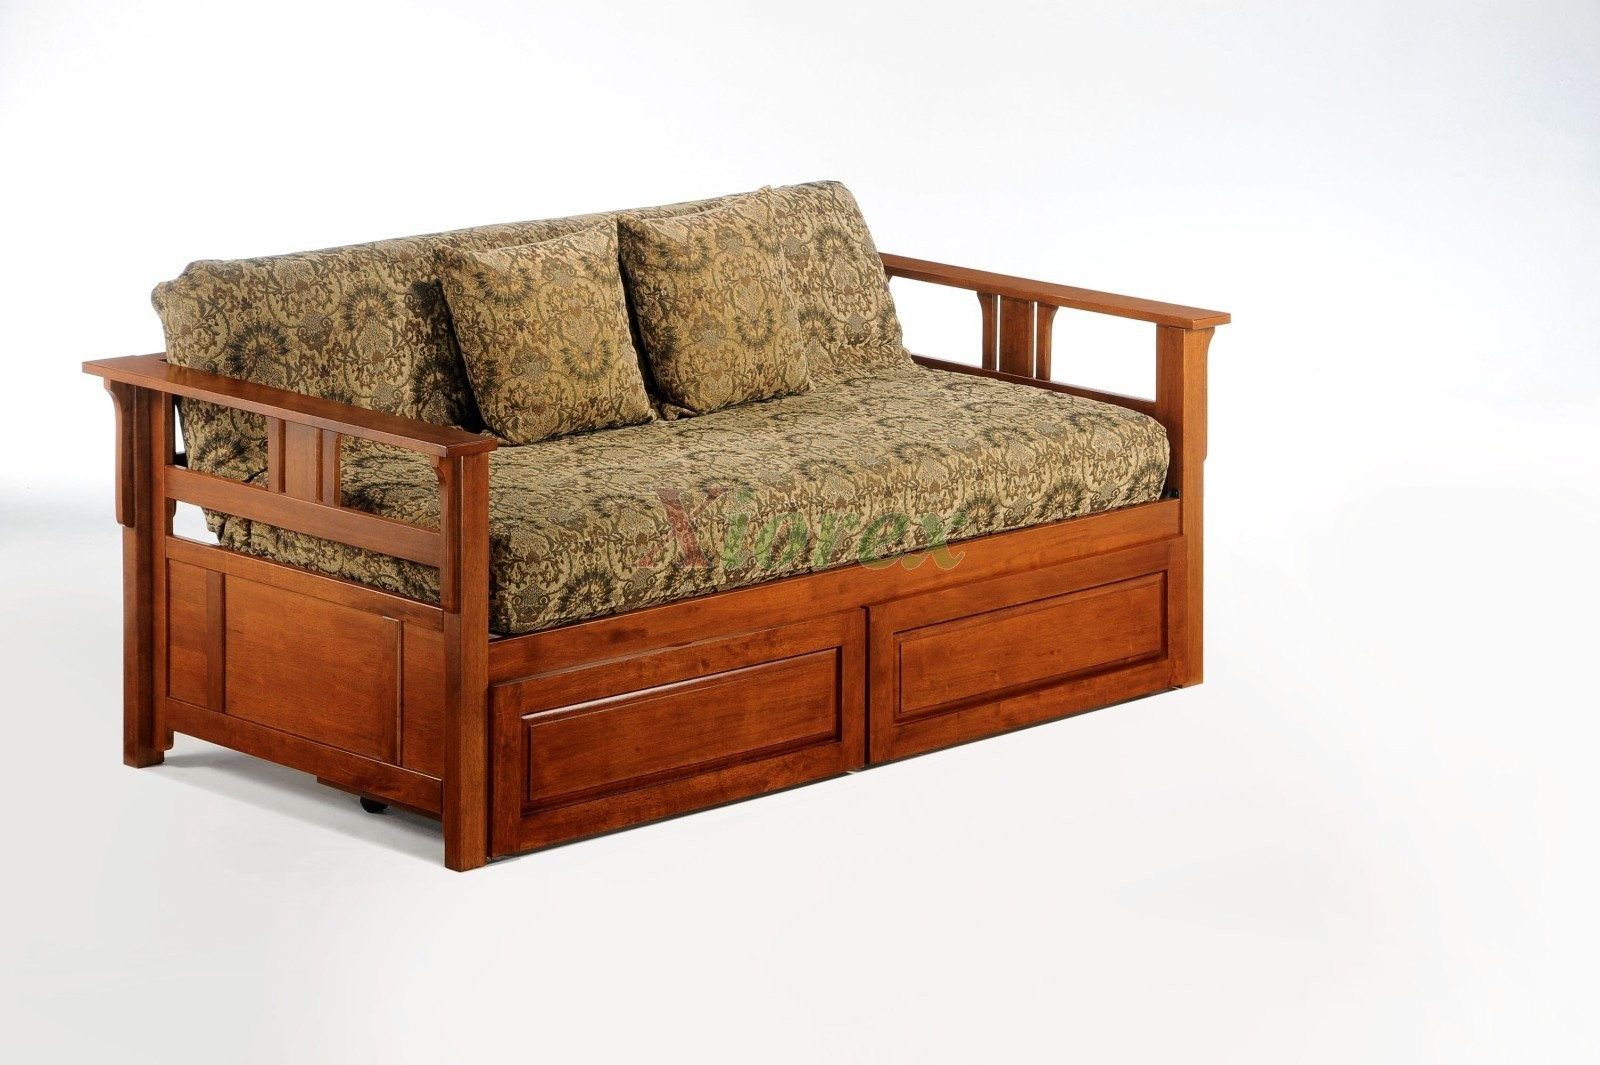 Day Beds For Sale Night And Day Teddy Roosevelt Daybed With Trundle Guest Bed Xiorex